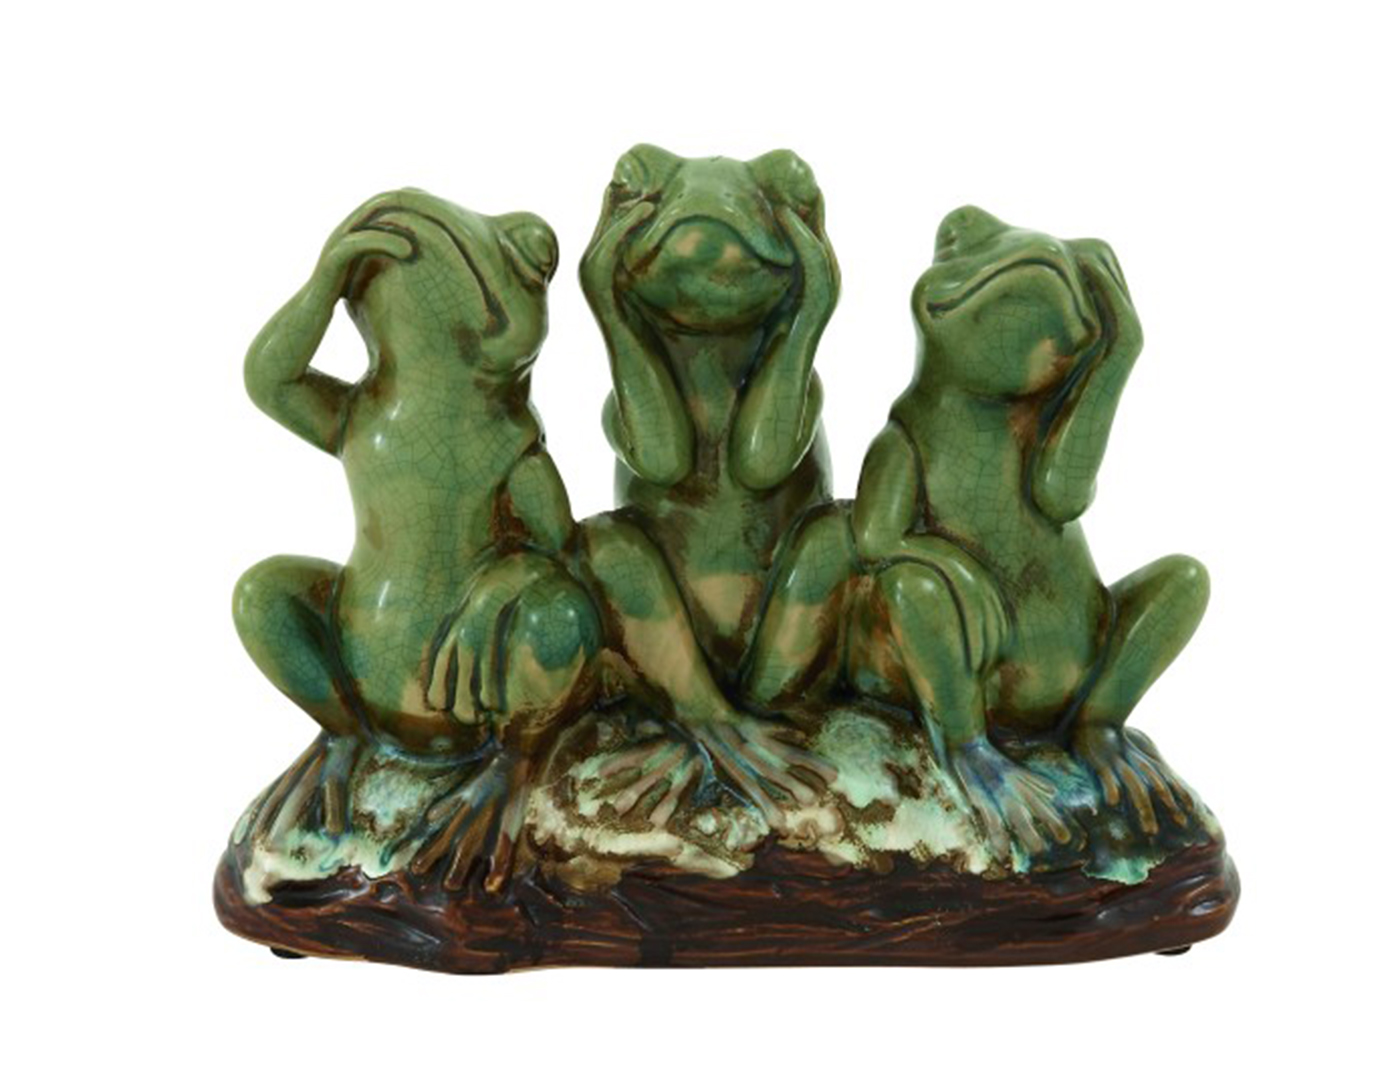 Group of Frogs Statue